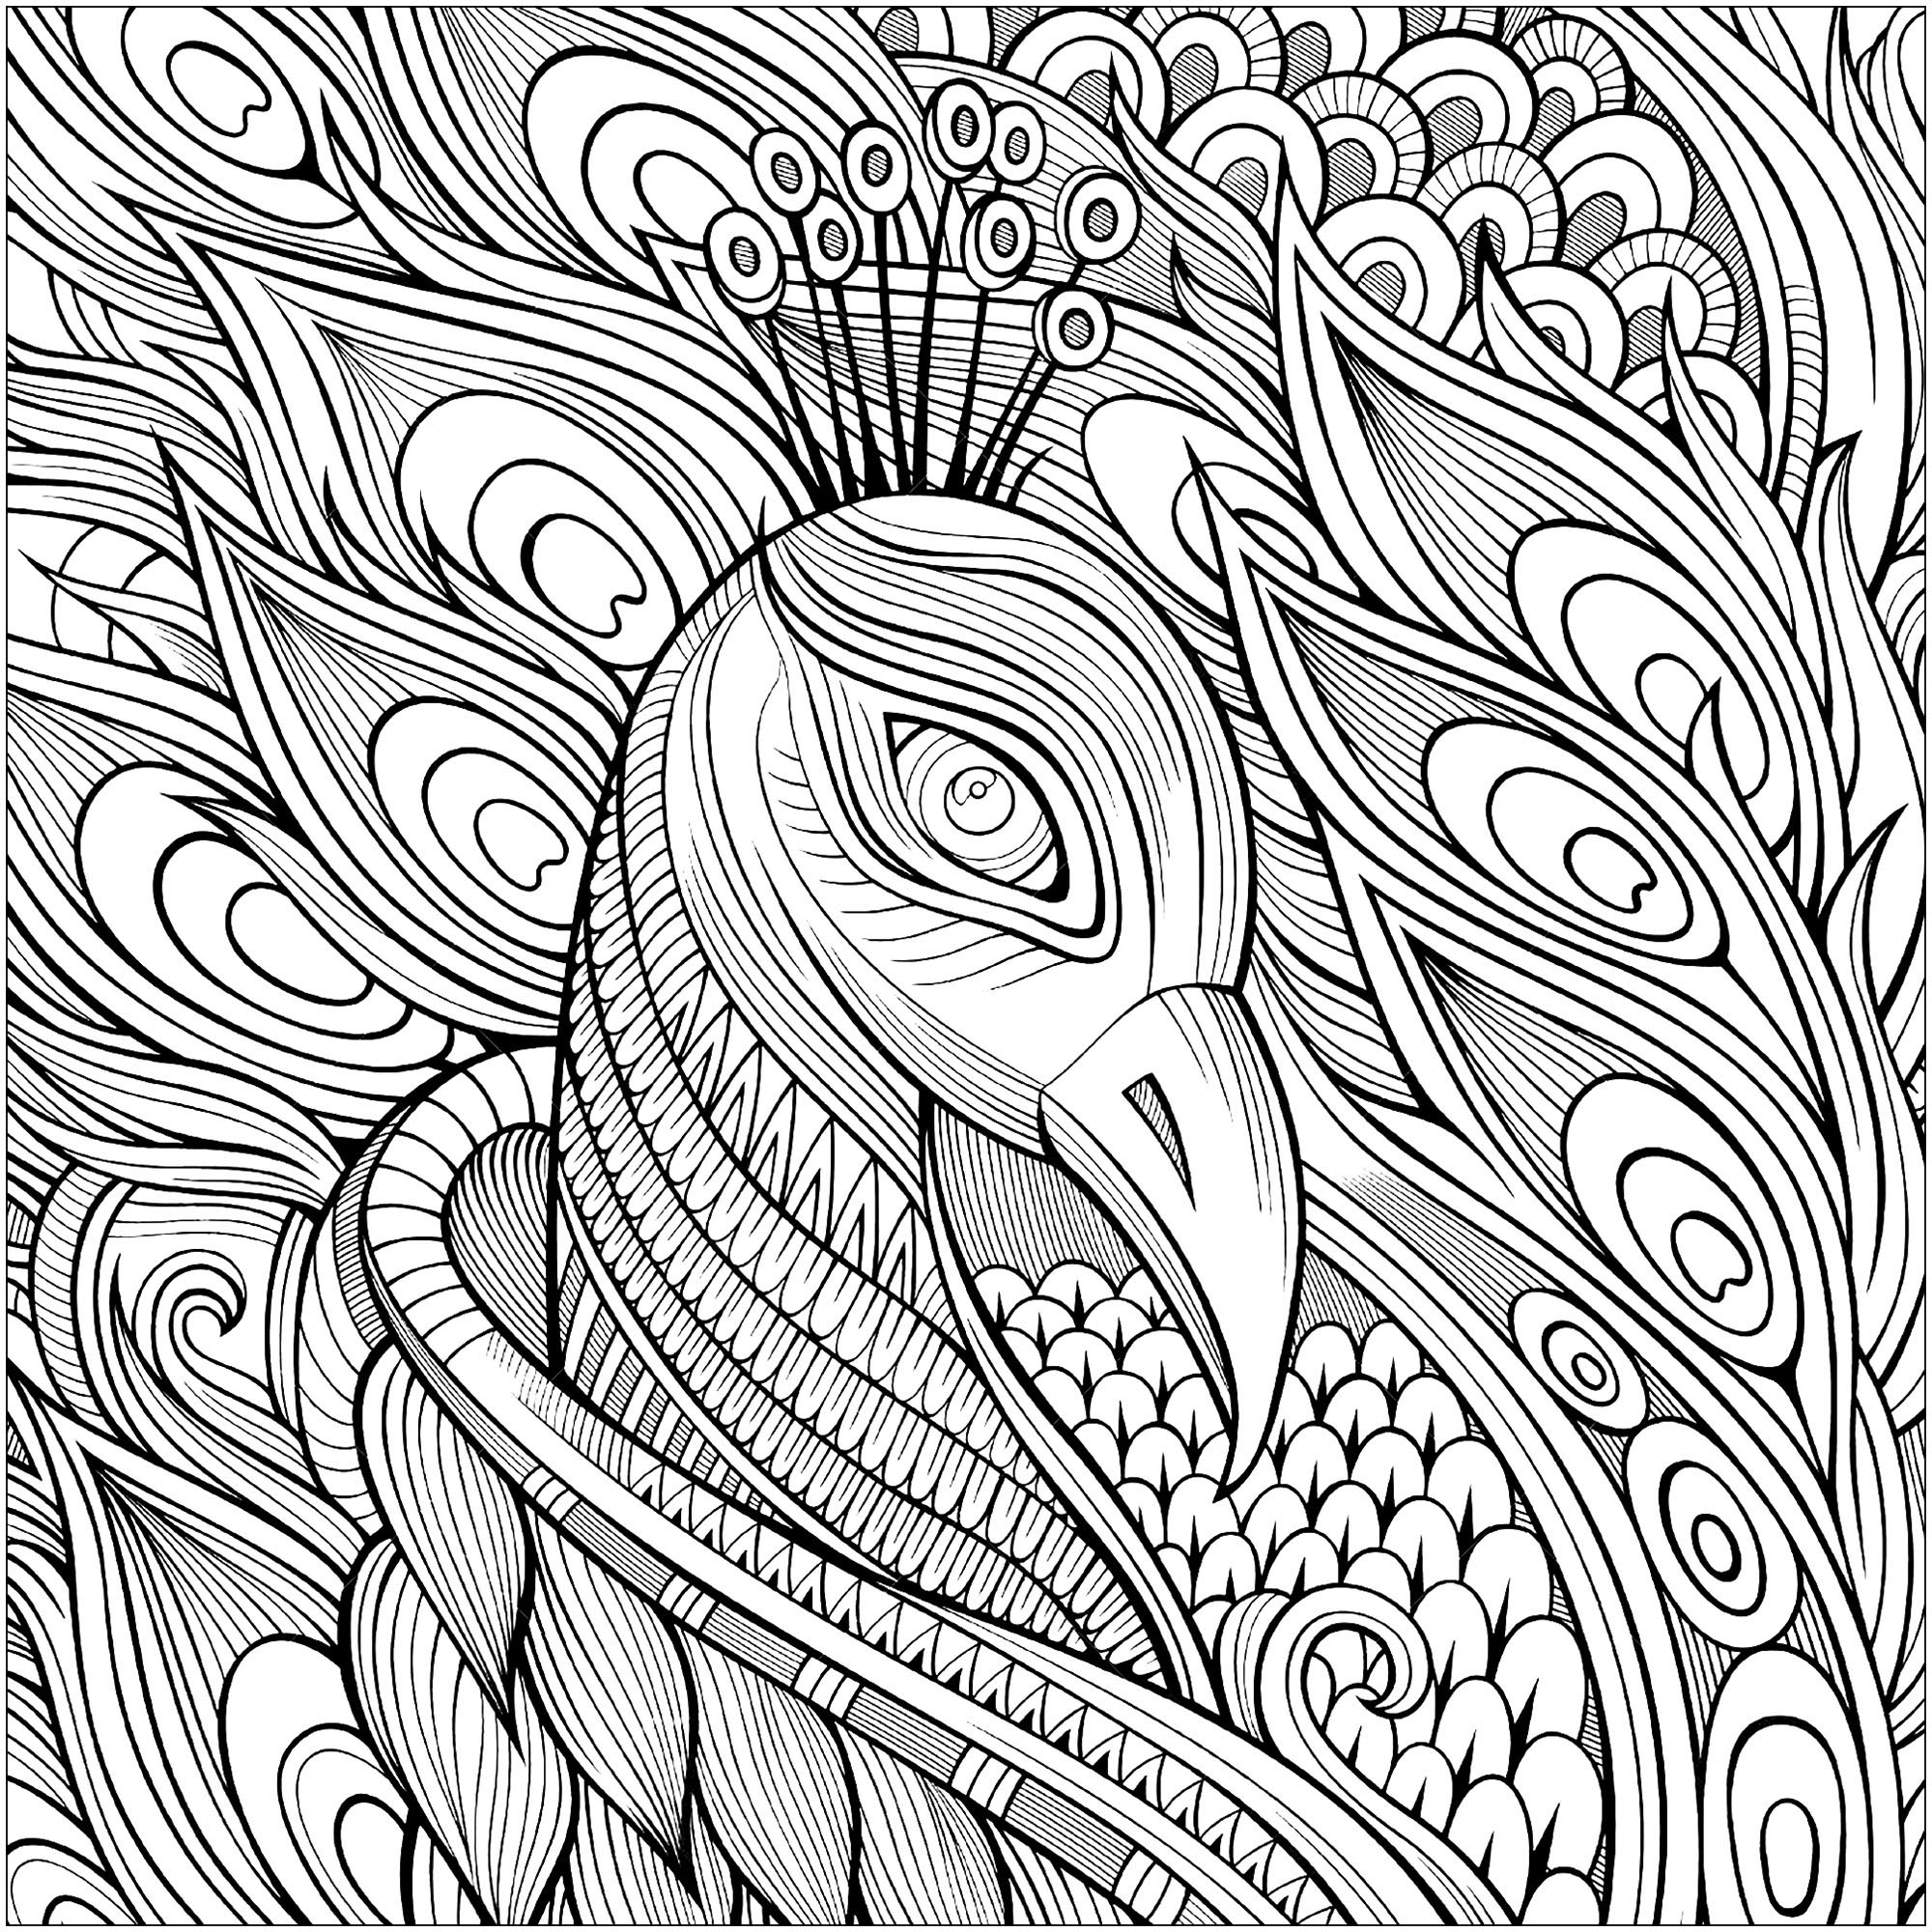 peacock coloring images peacock coloring page stock illustration download image coloring peacock images